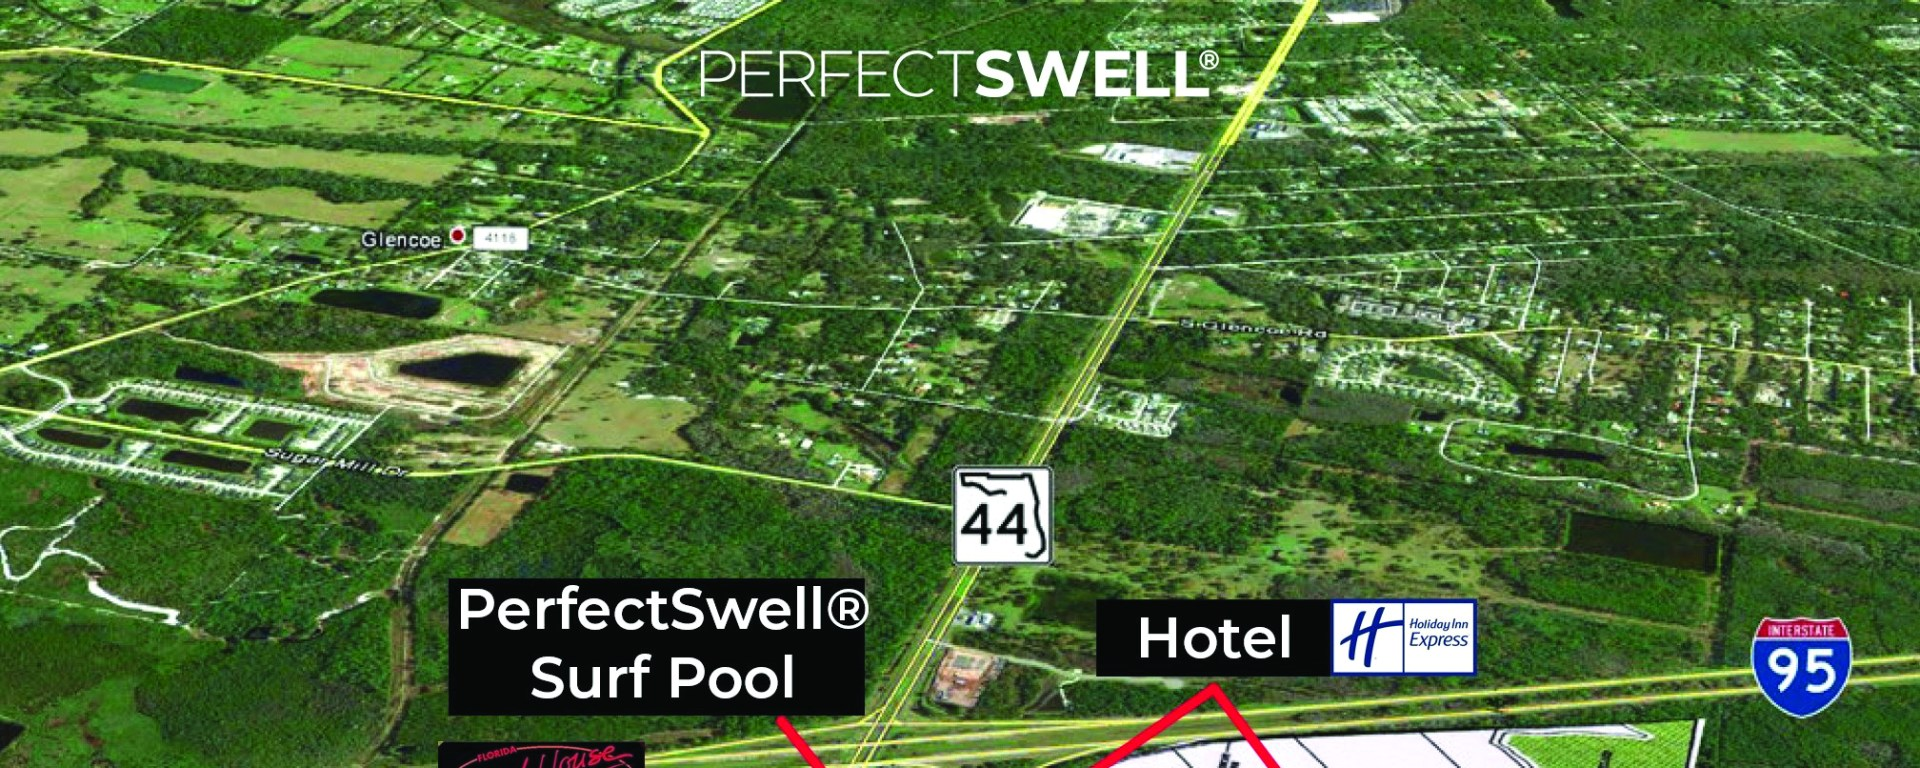 PerfectSwell map site in new smyrna beach